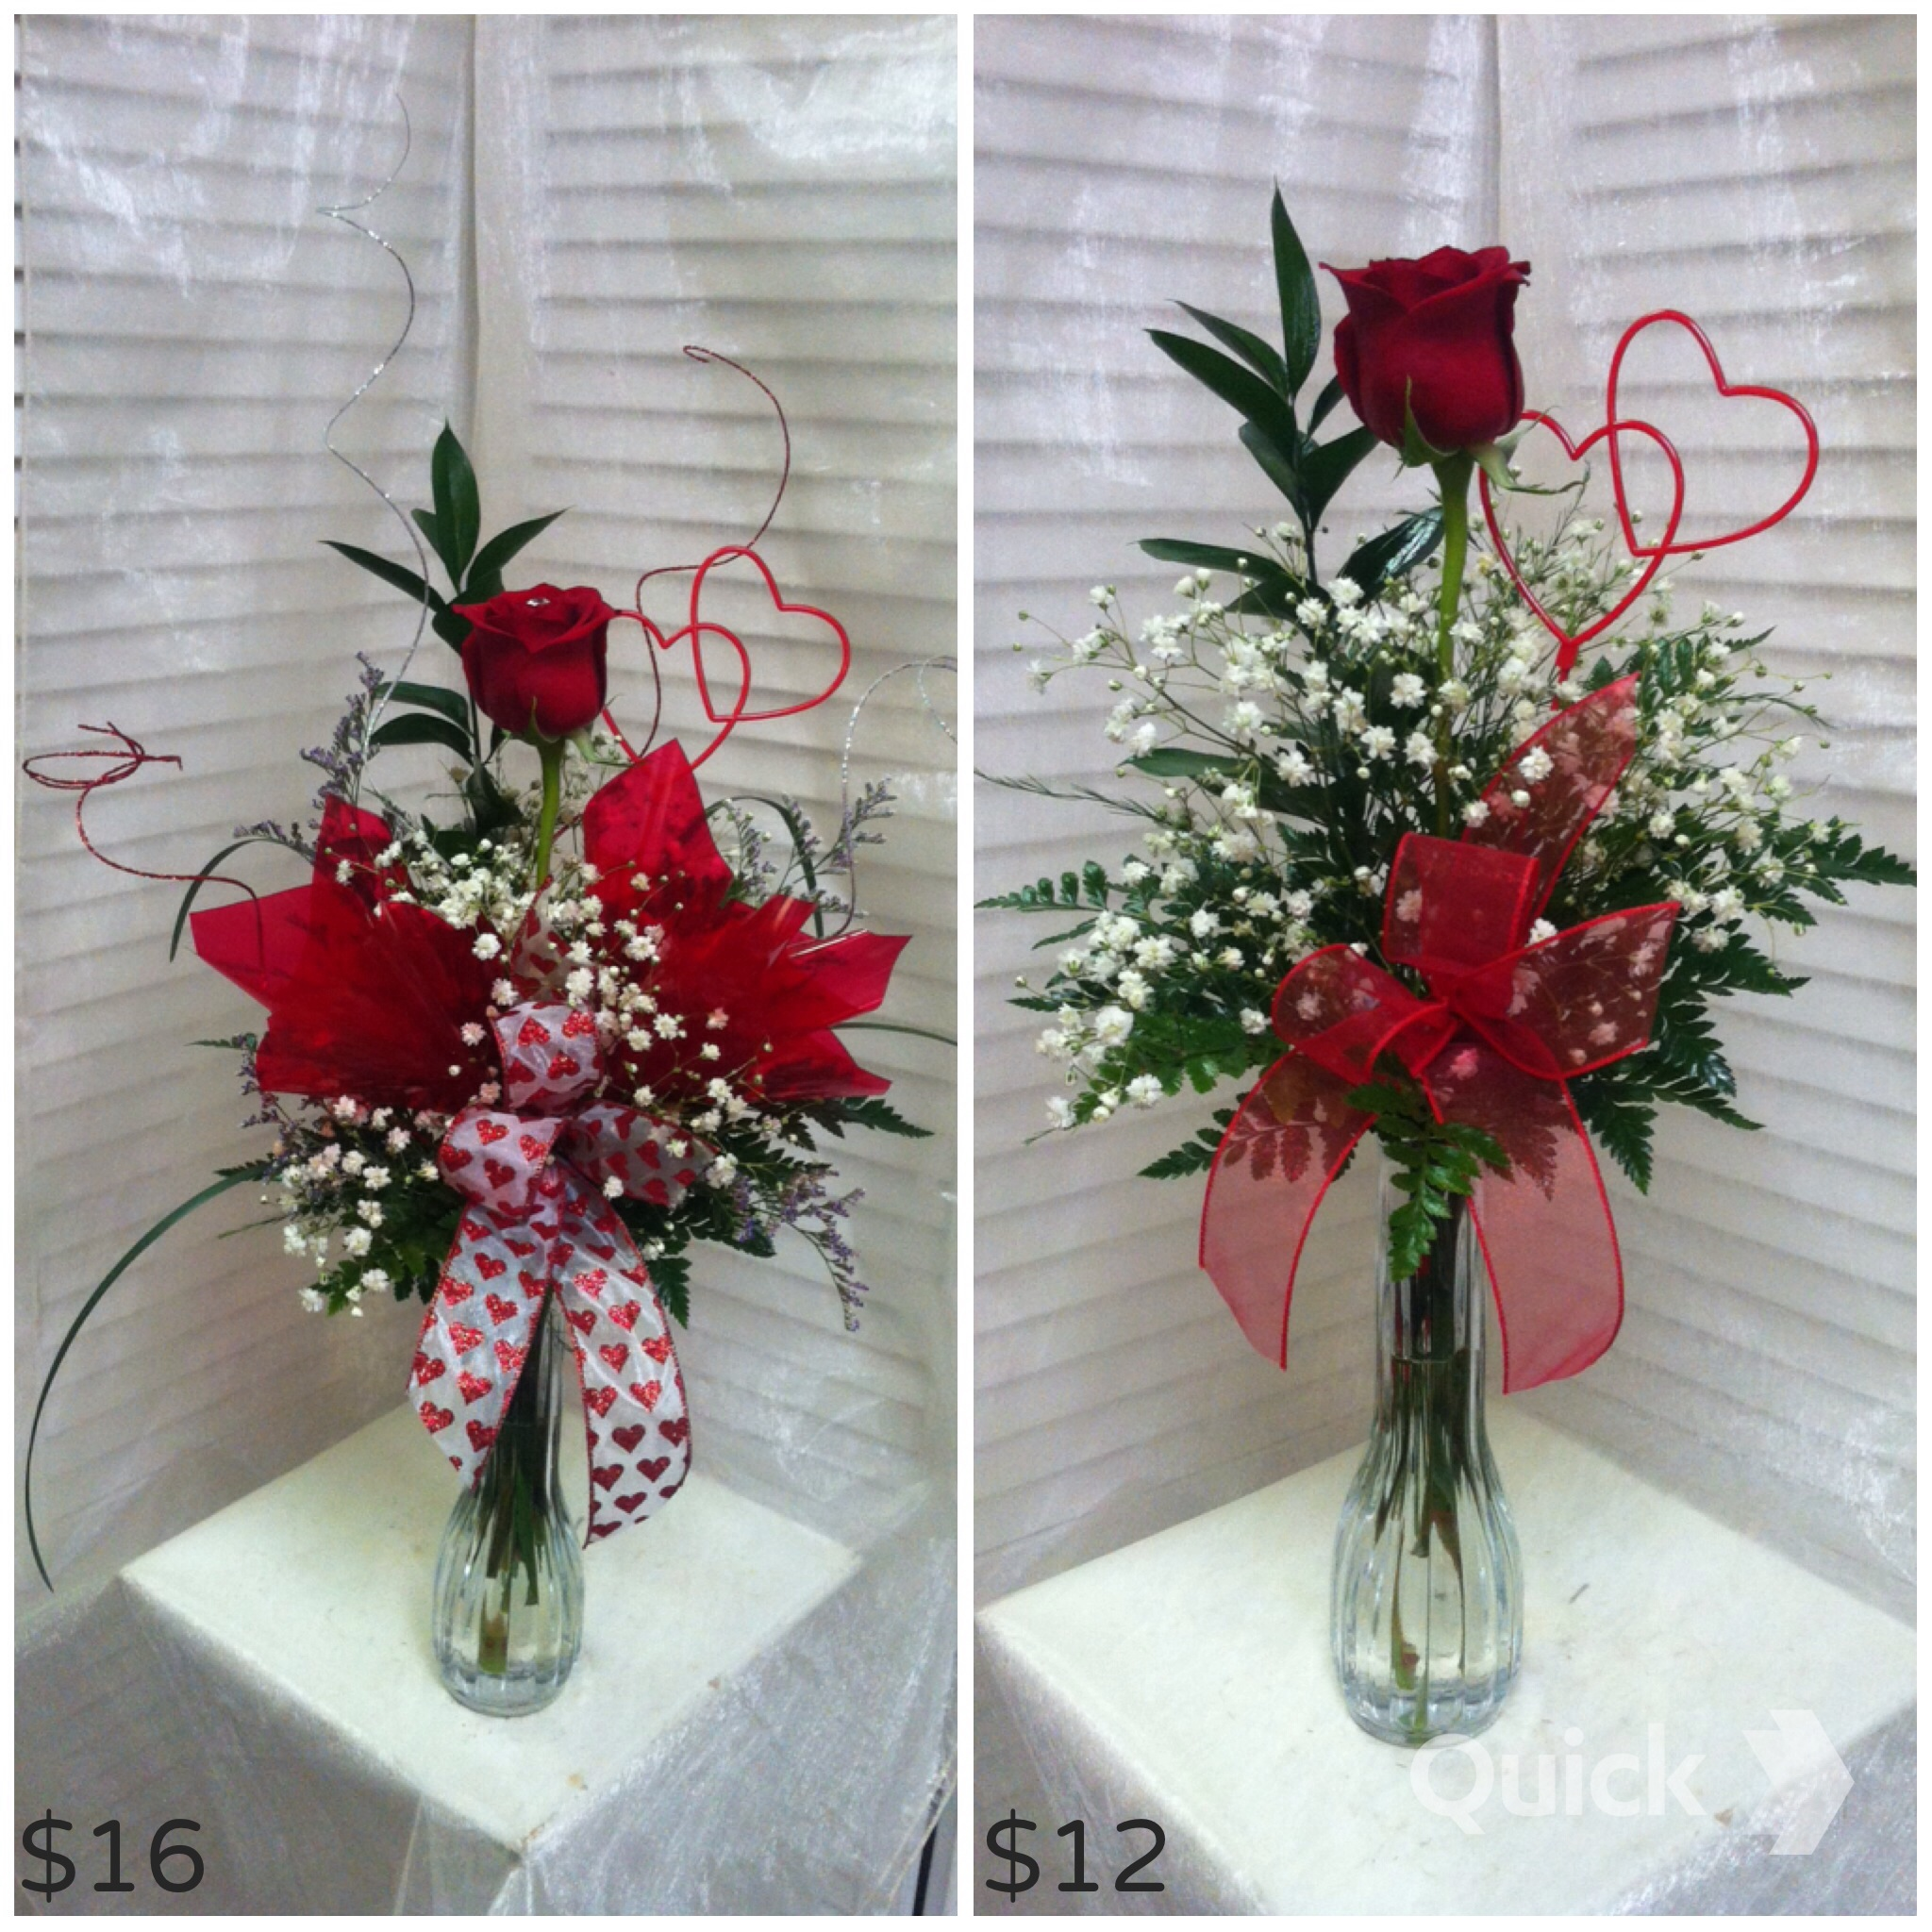 1 Rose, Deluxe and Standard